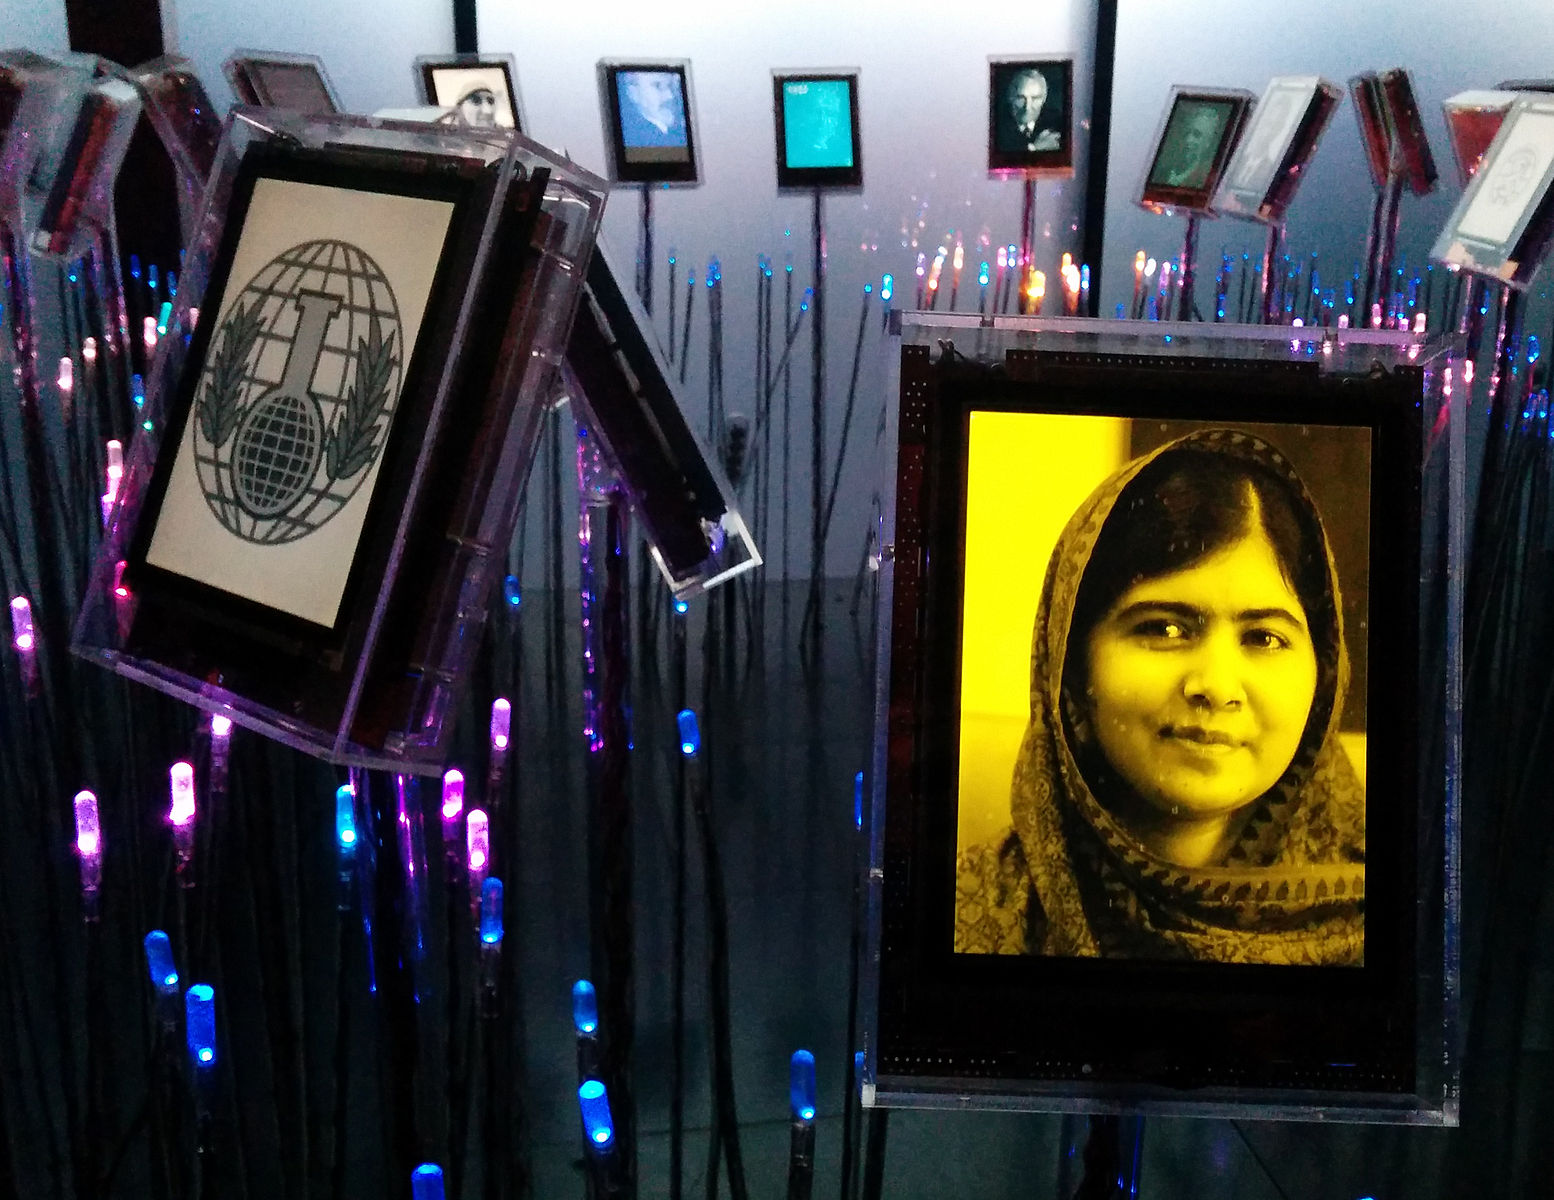 Expo_at_Nobel_Peace_Center_-_Malala_Yousafzai_2014-10-10